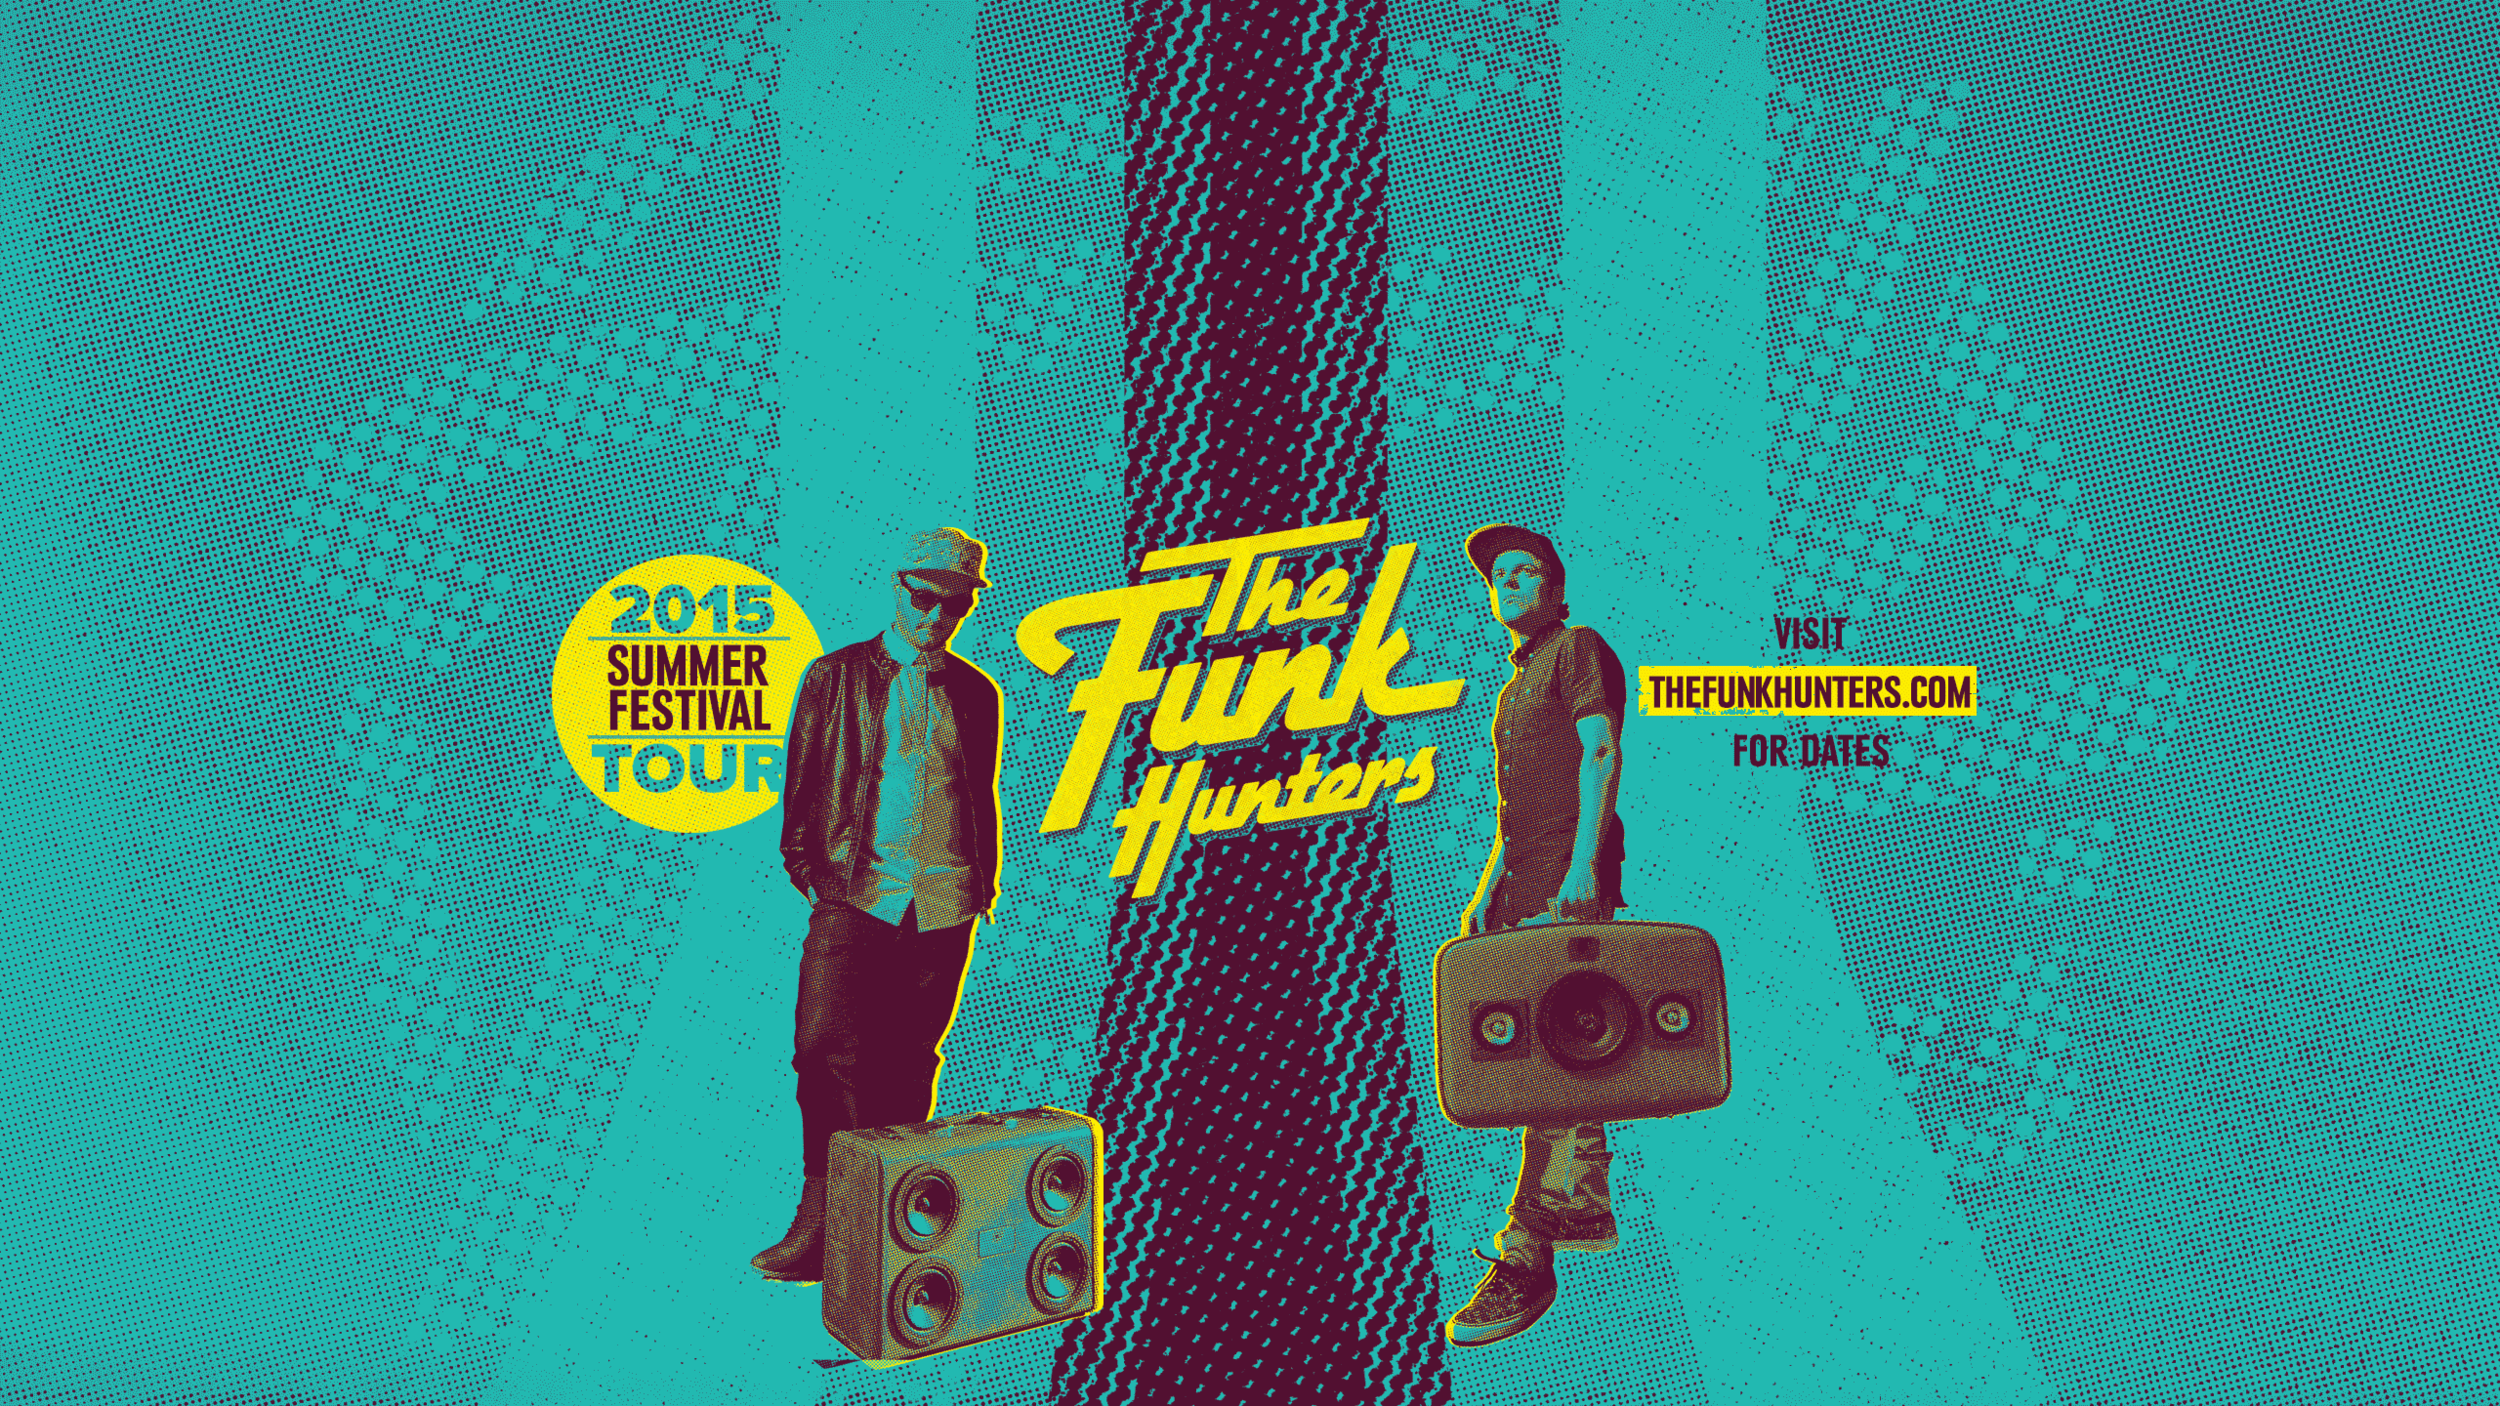 FunkHunters_summerTour2015_youtube.png